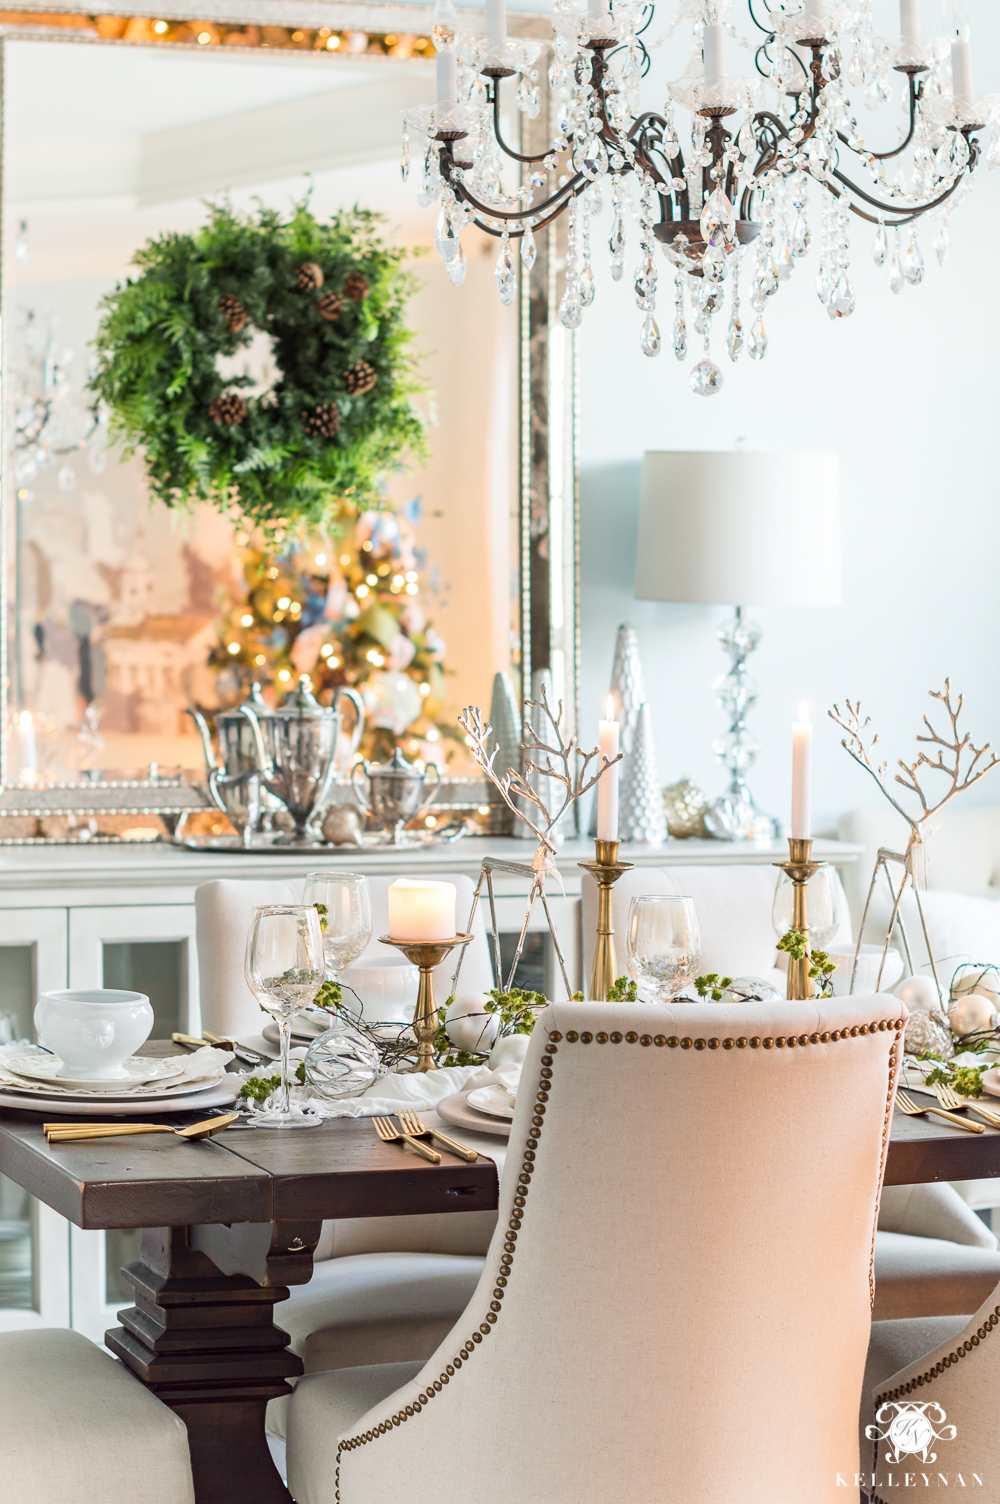 Christmas table decor ideas with reindeer and ornament centerpiece